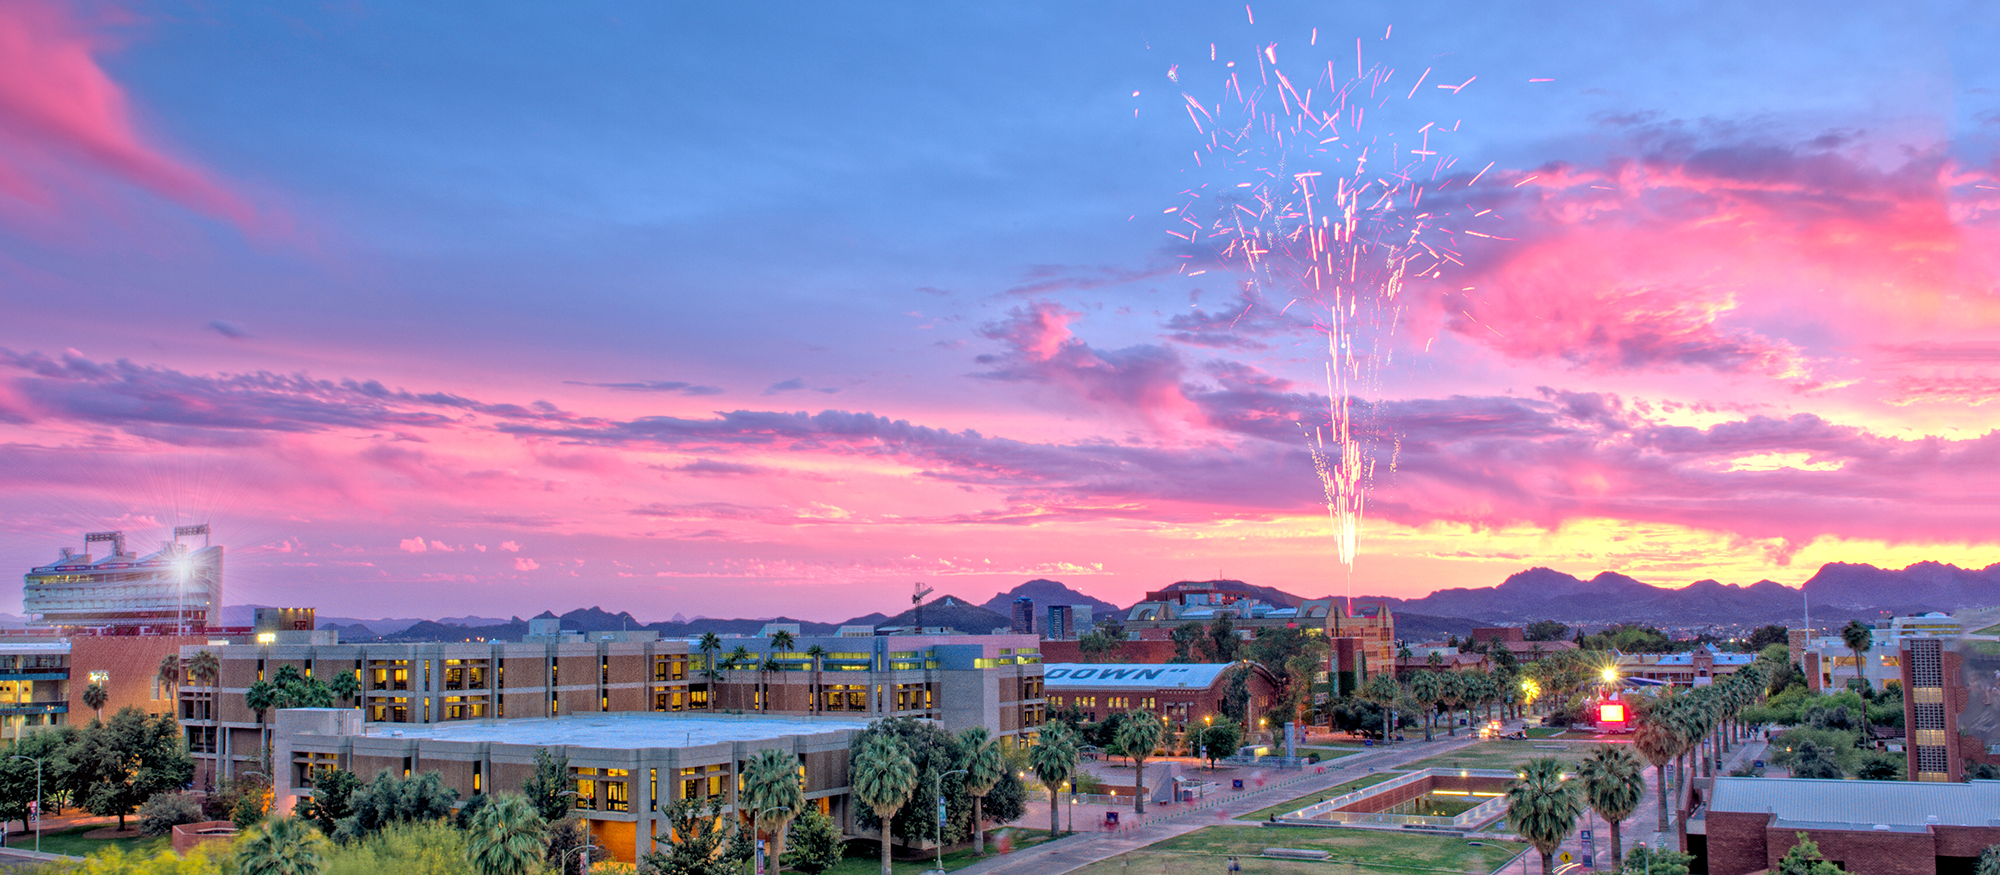 University of Arizona campus and fireworks - Talent Applicant portal